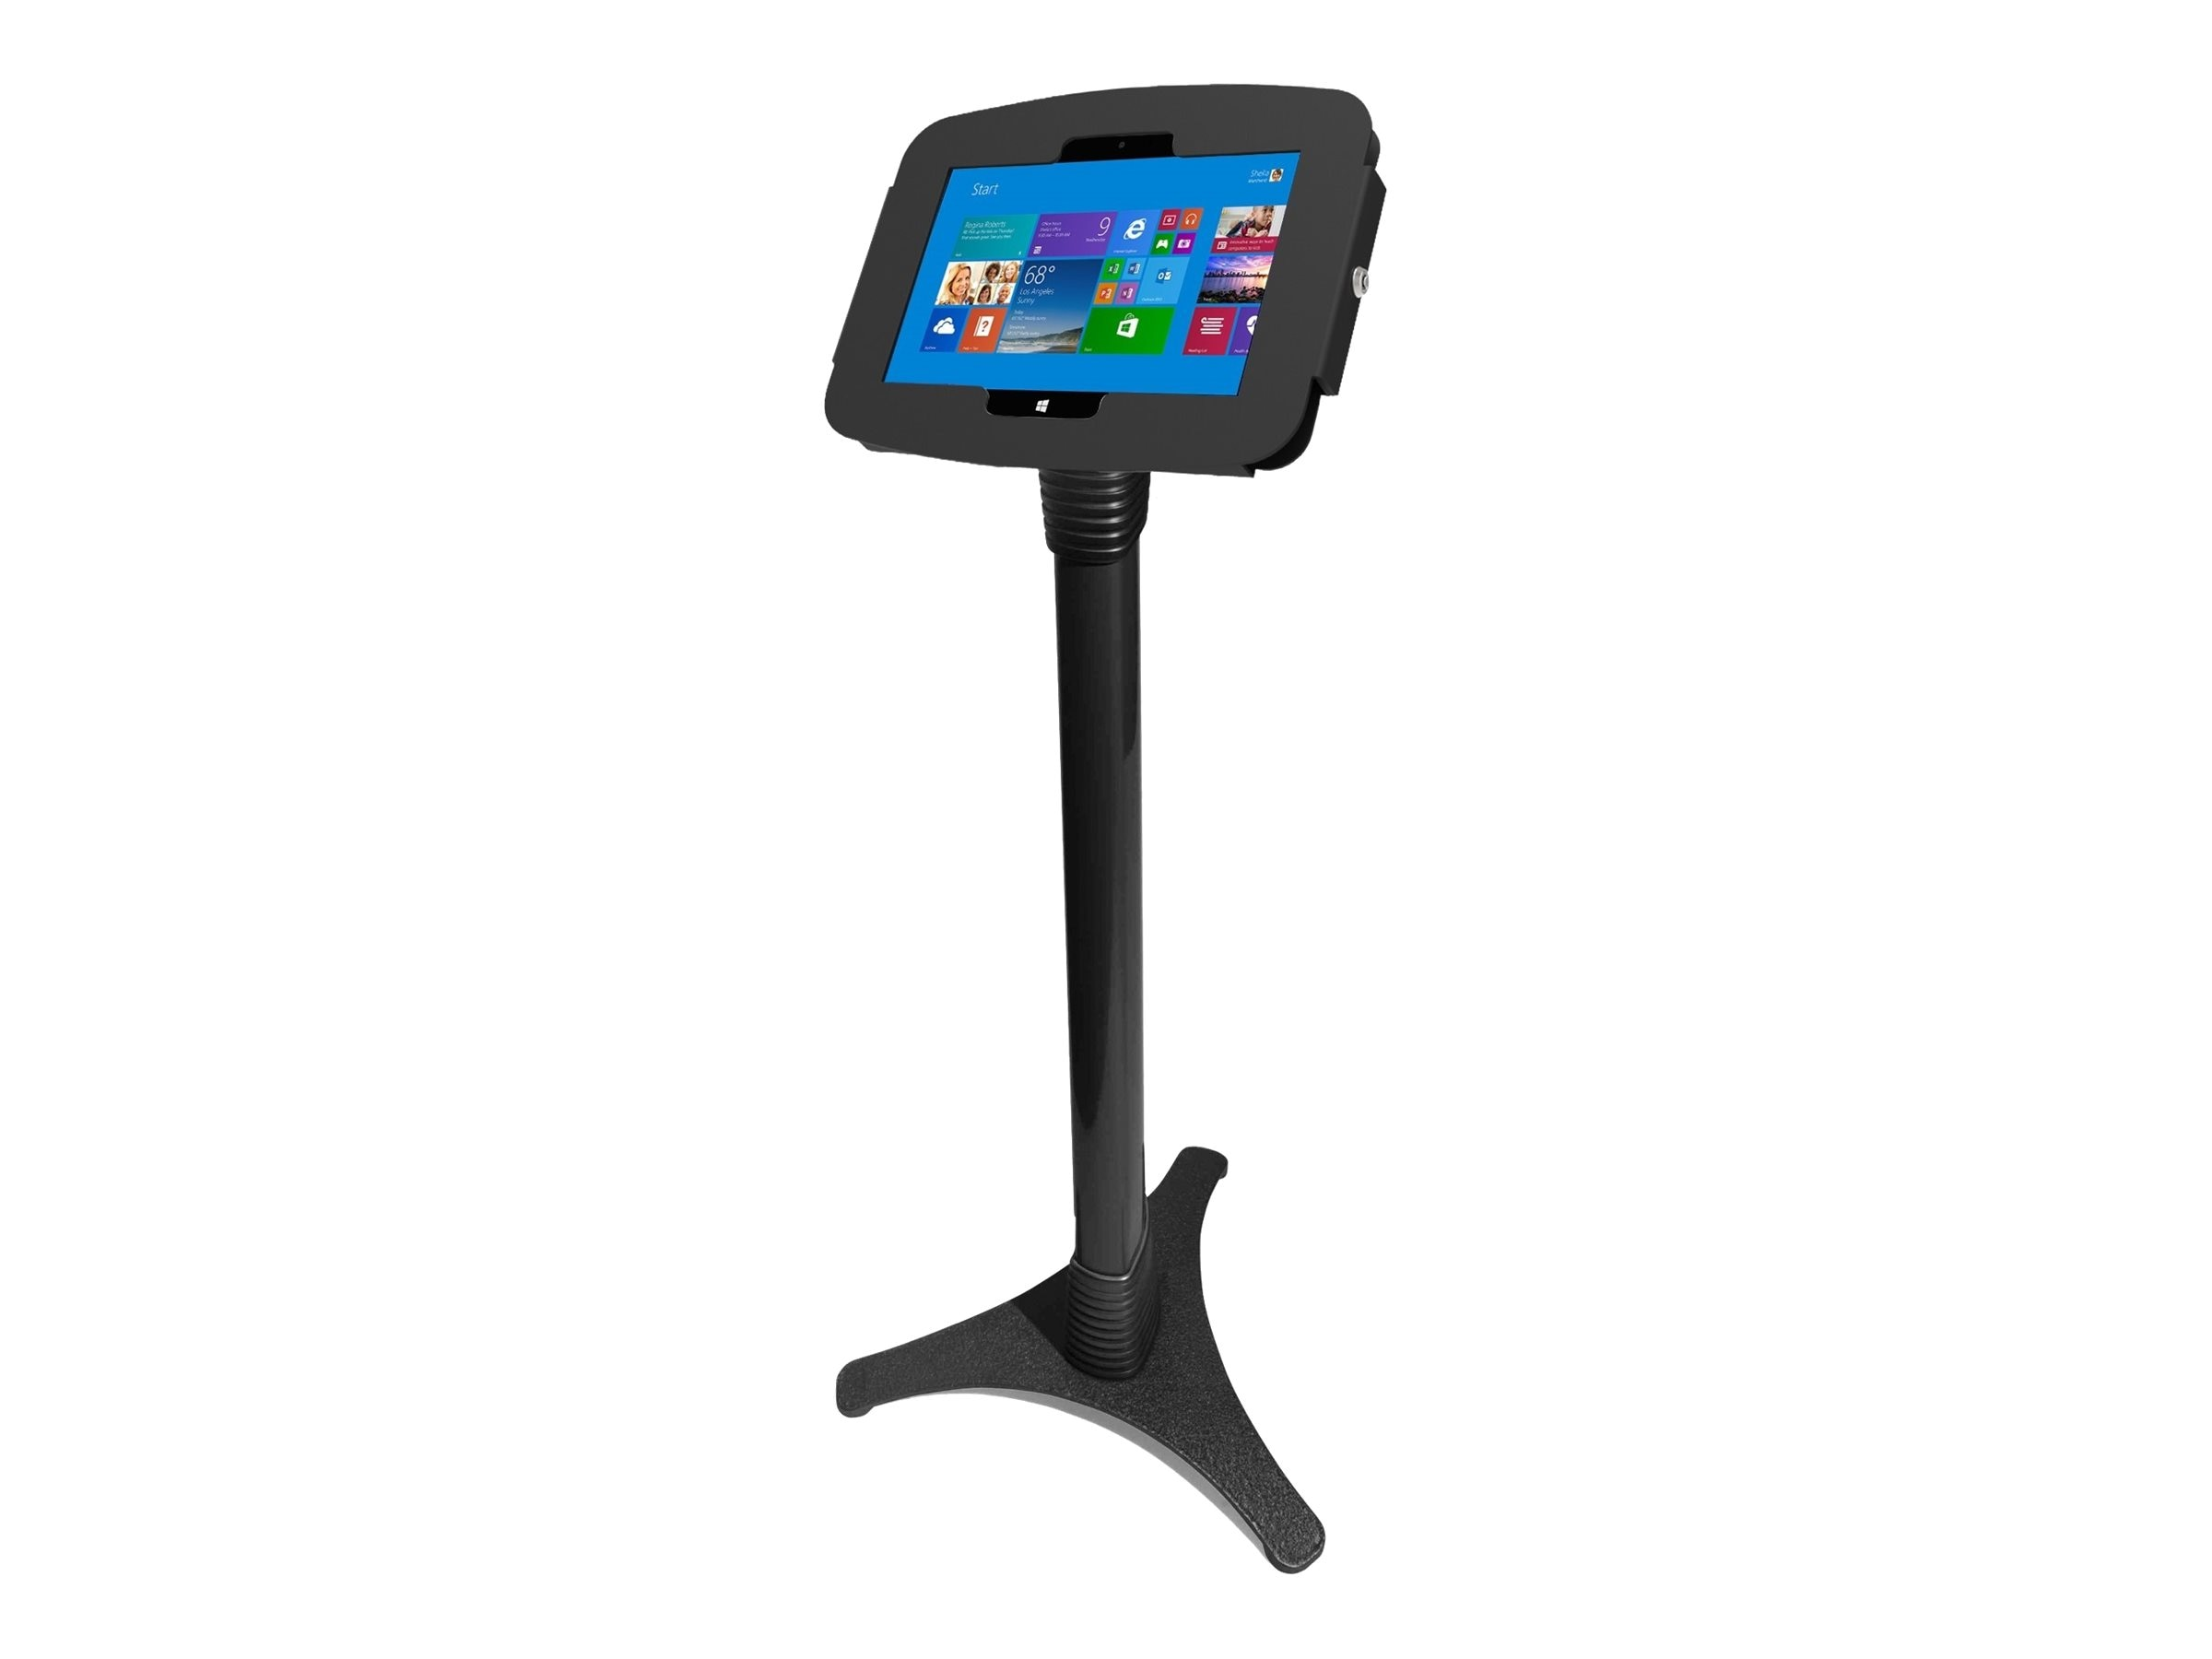 Compulocks Surface Pro 3 Space Adjustable Stand, Black, 147B530GEB, 17861860, Security Hardware